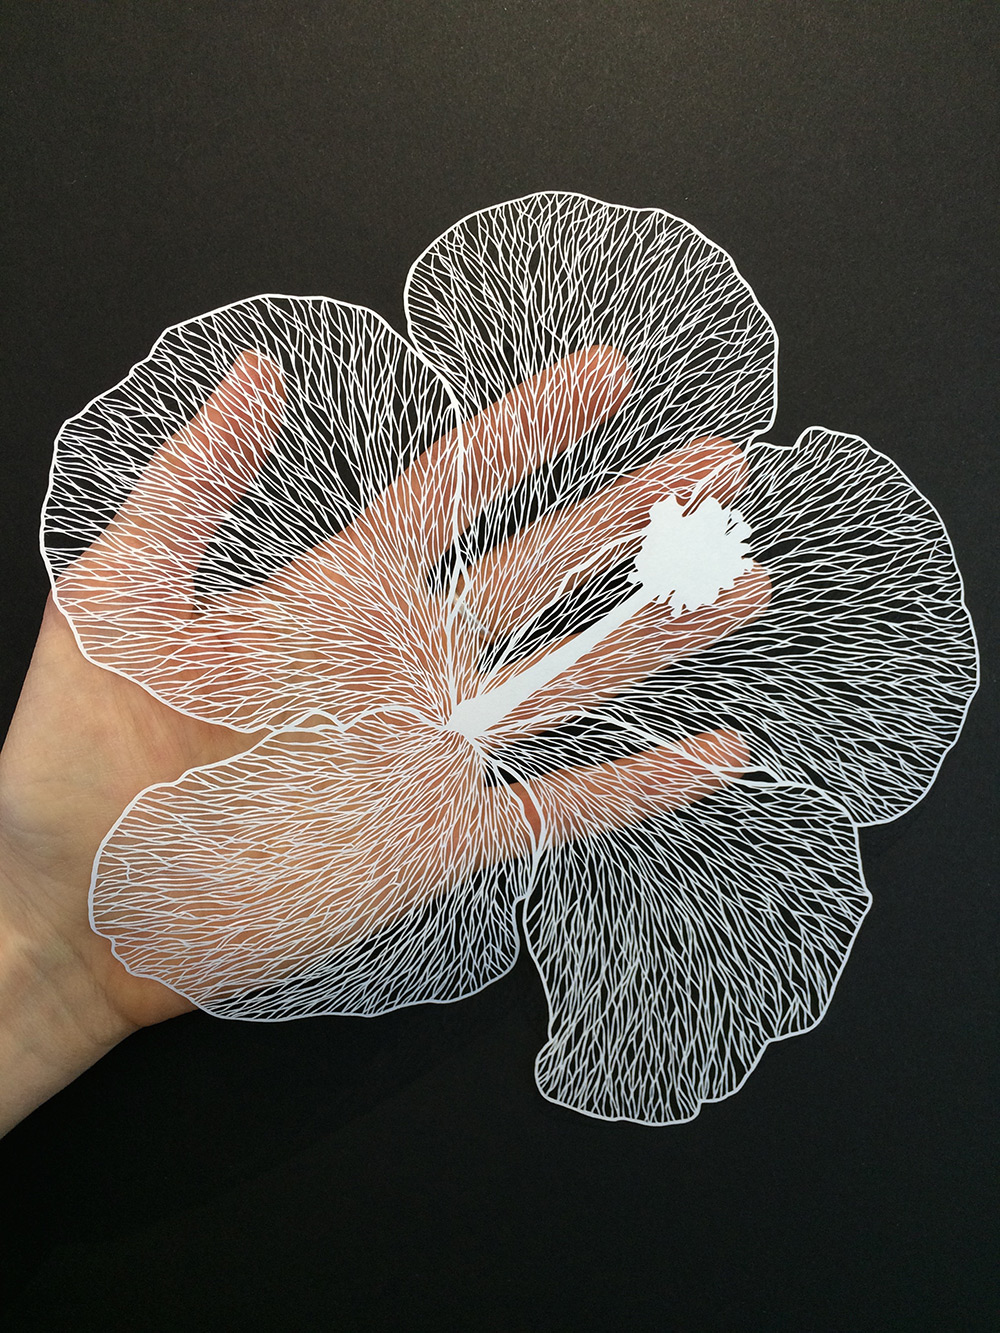 Simply Creative Delicate Cut Paper Flowers By Maude White